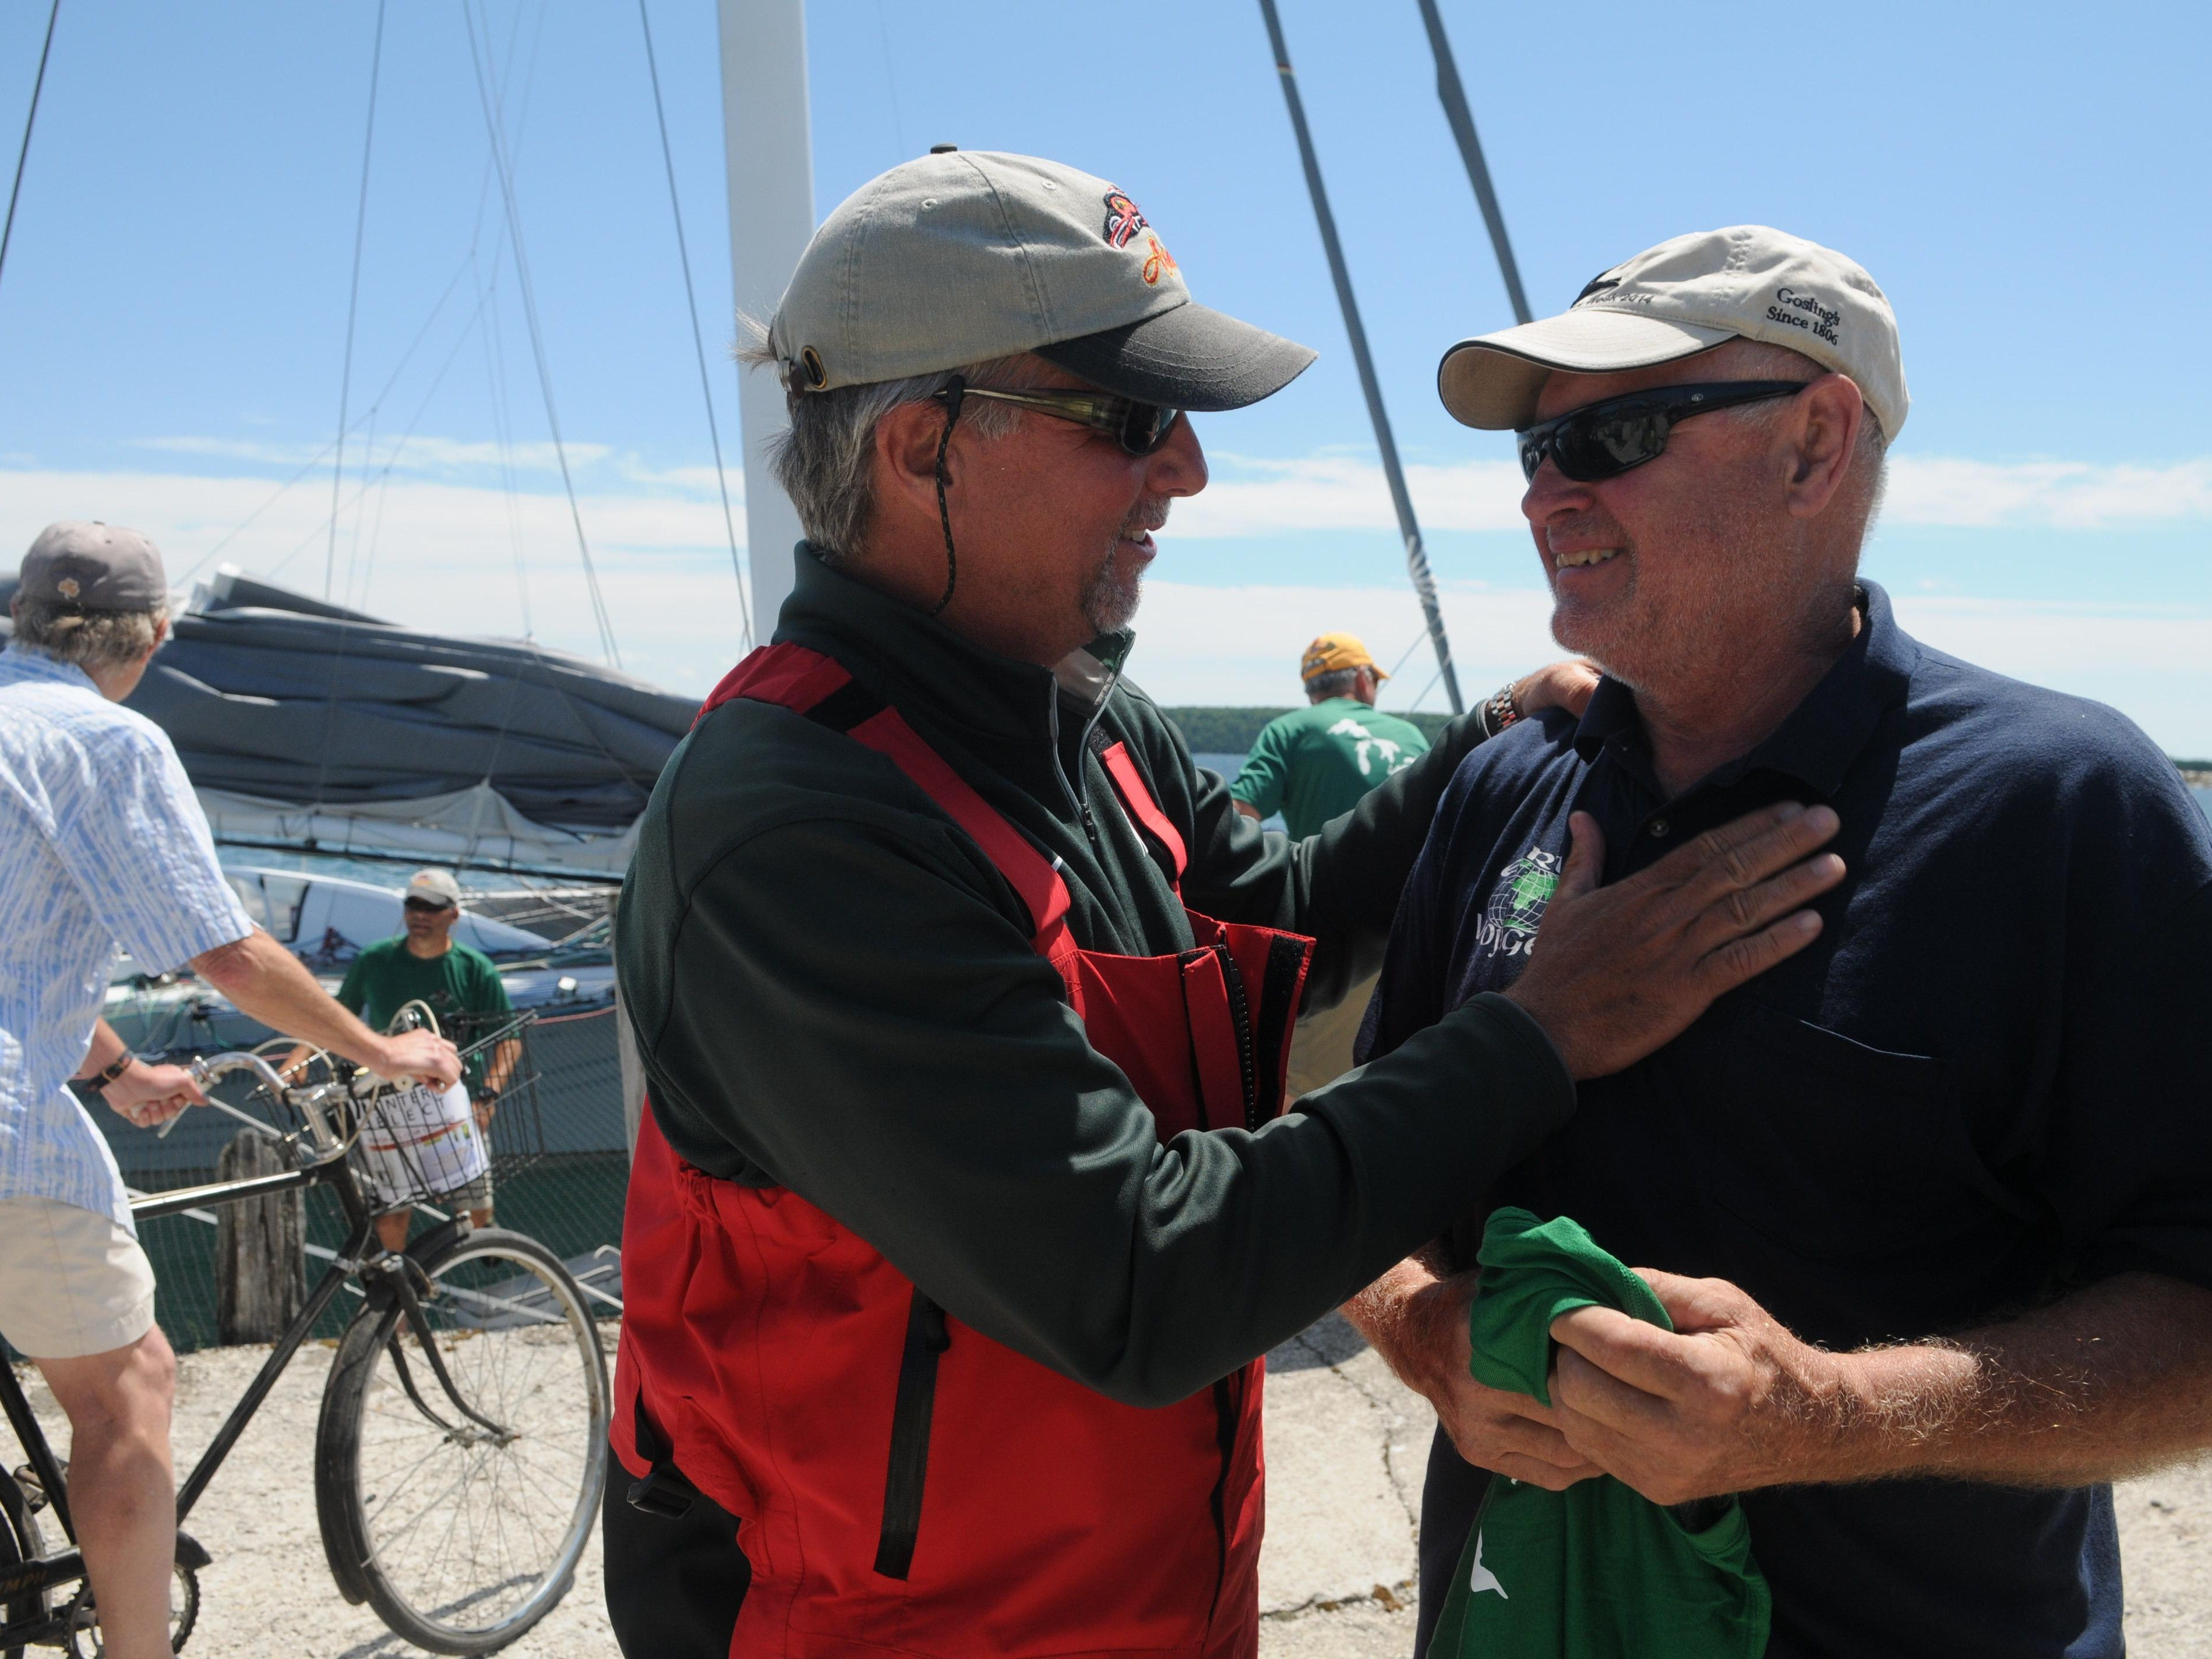 Rick Warner, owner of Arete, talks to Ray Howe, owner of Earth Voyager, after giving him a tee shirt Sunday, July 19, 2015 during the start of the Port Huron-to-Mackinac Island Sailboat Race. Earth Voyager holds the record to the island as a multihull sailboat.